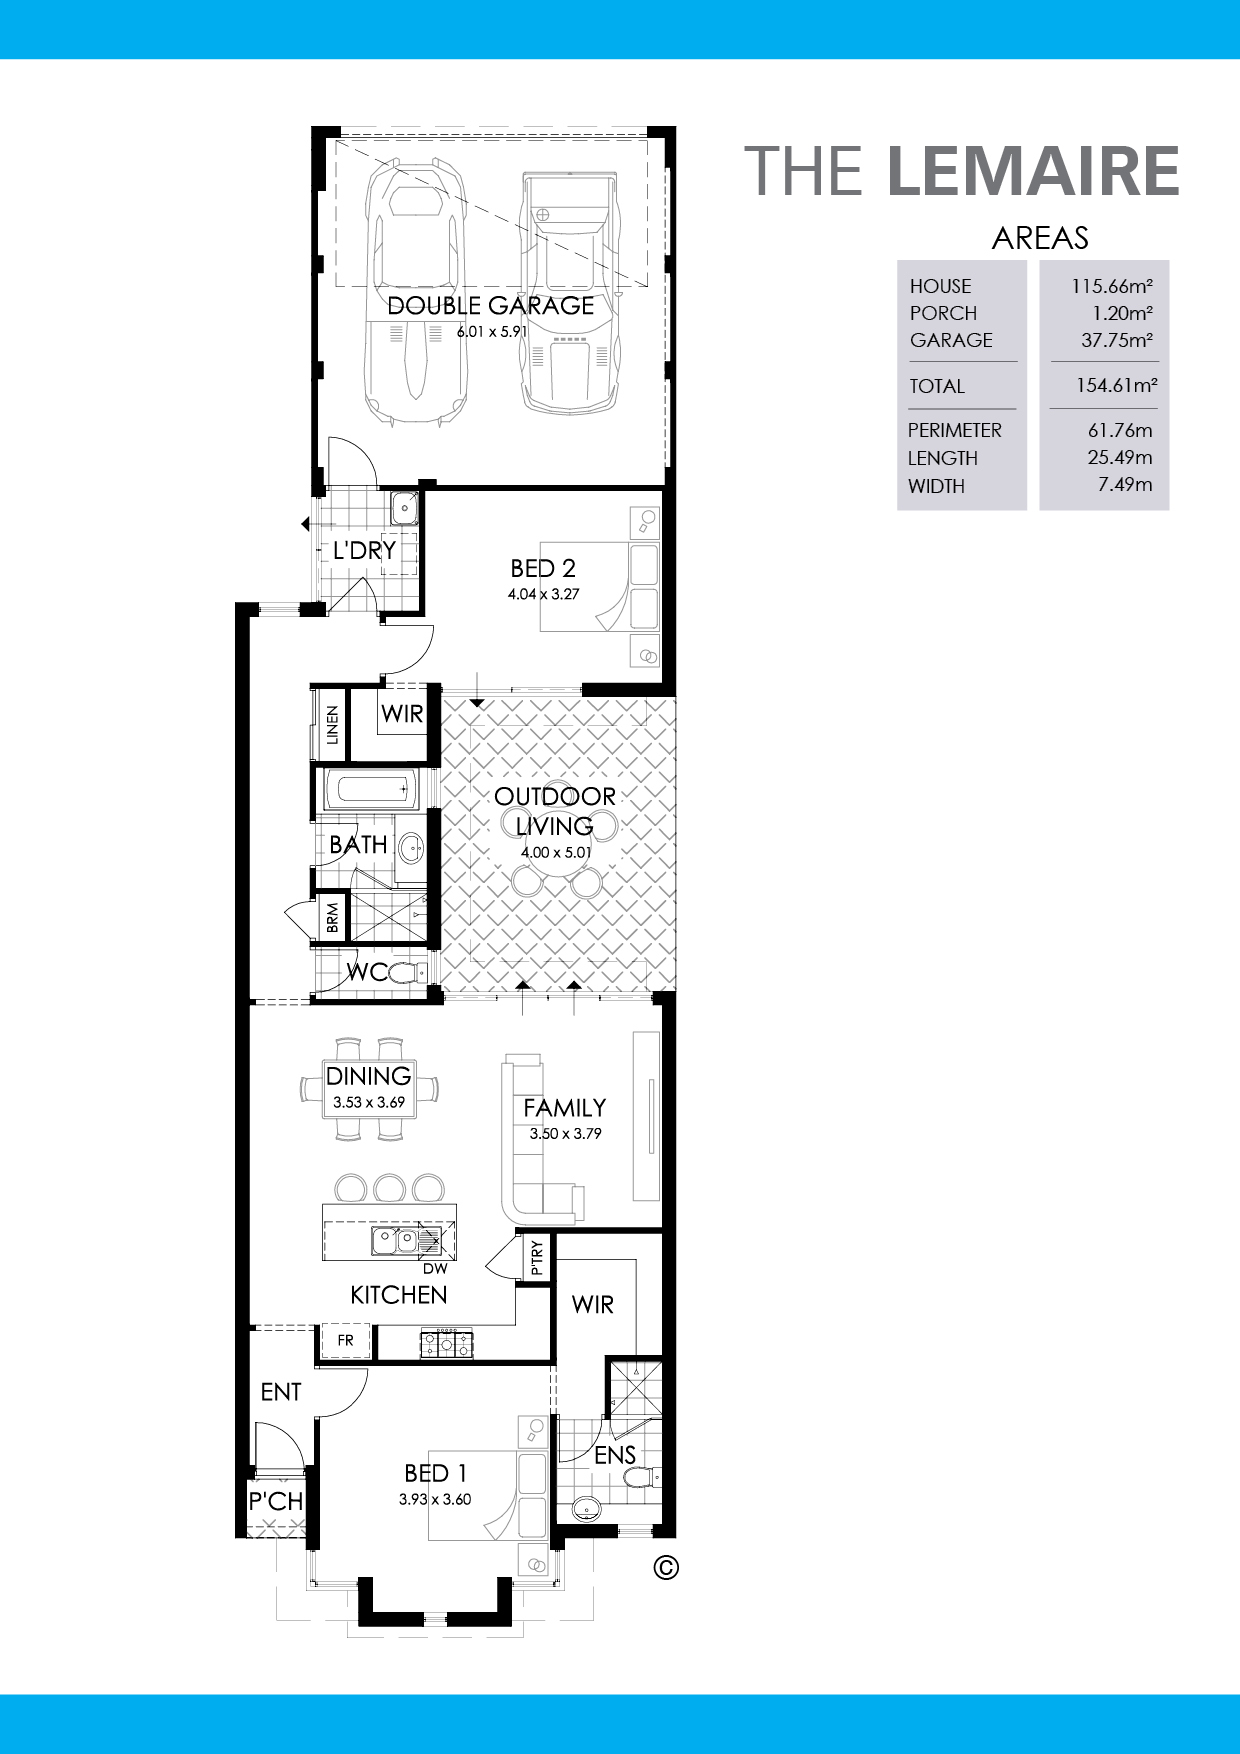 The Lemaire Floorplan